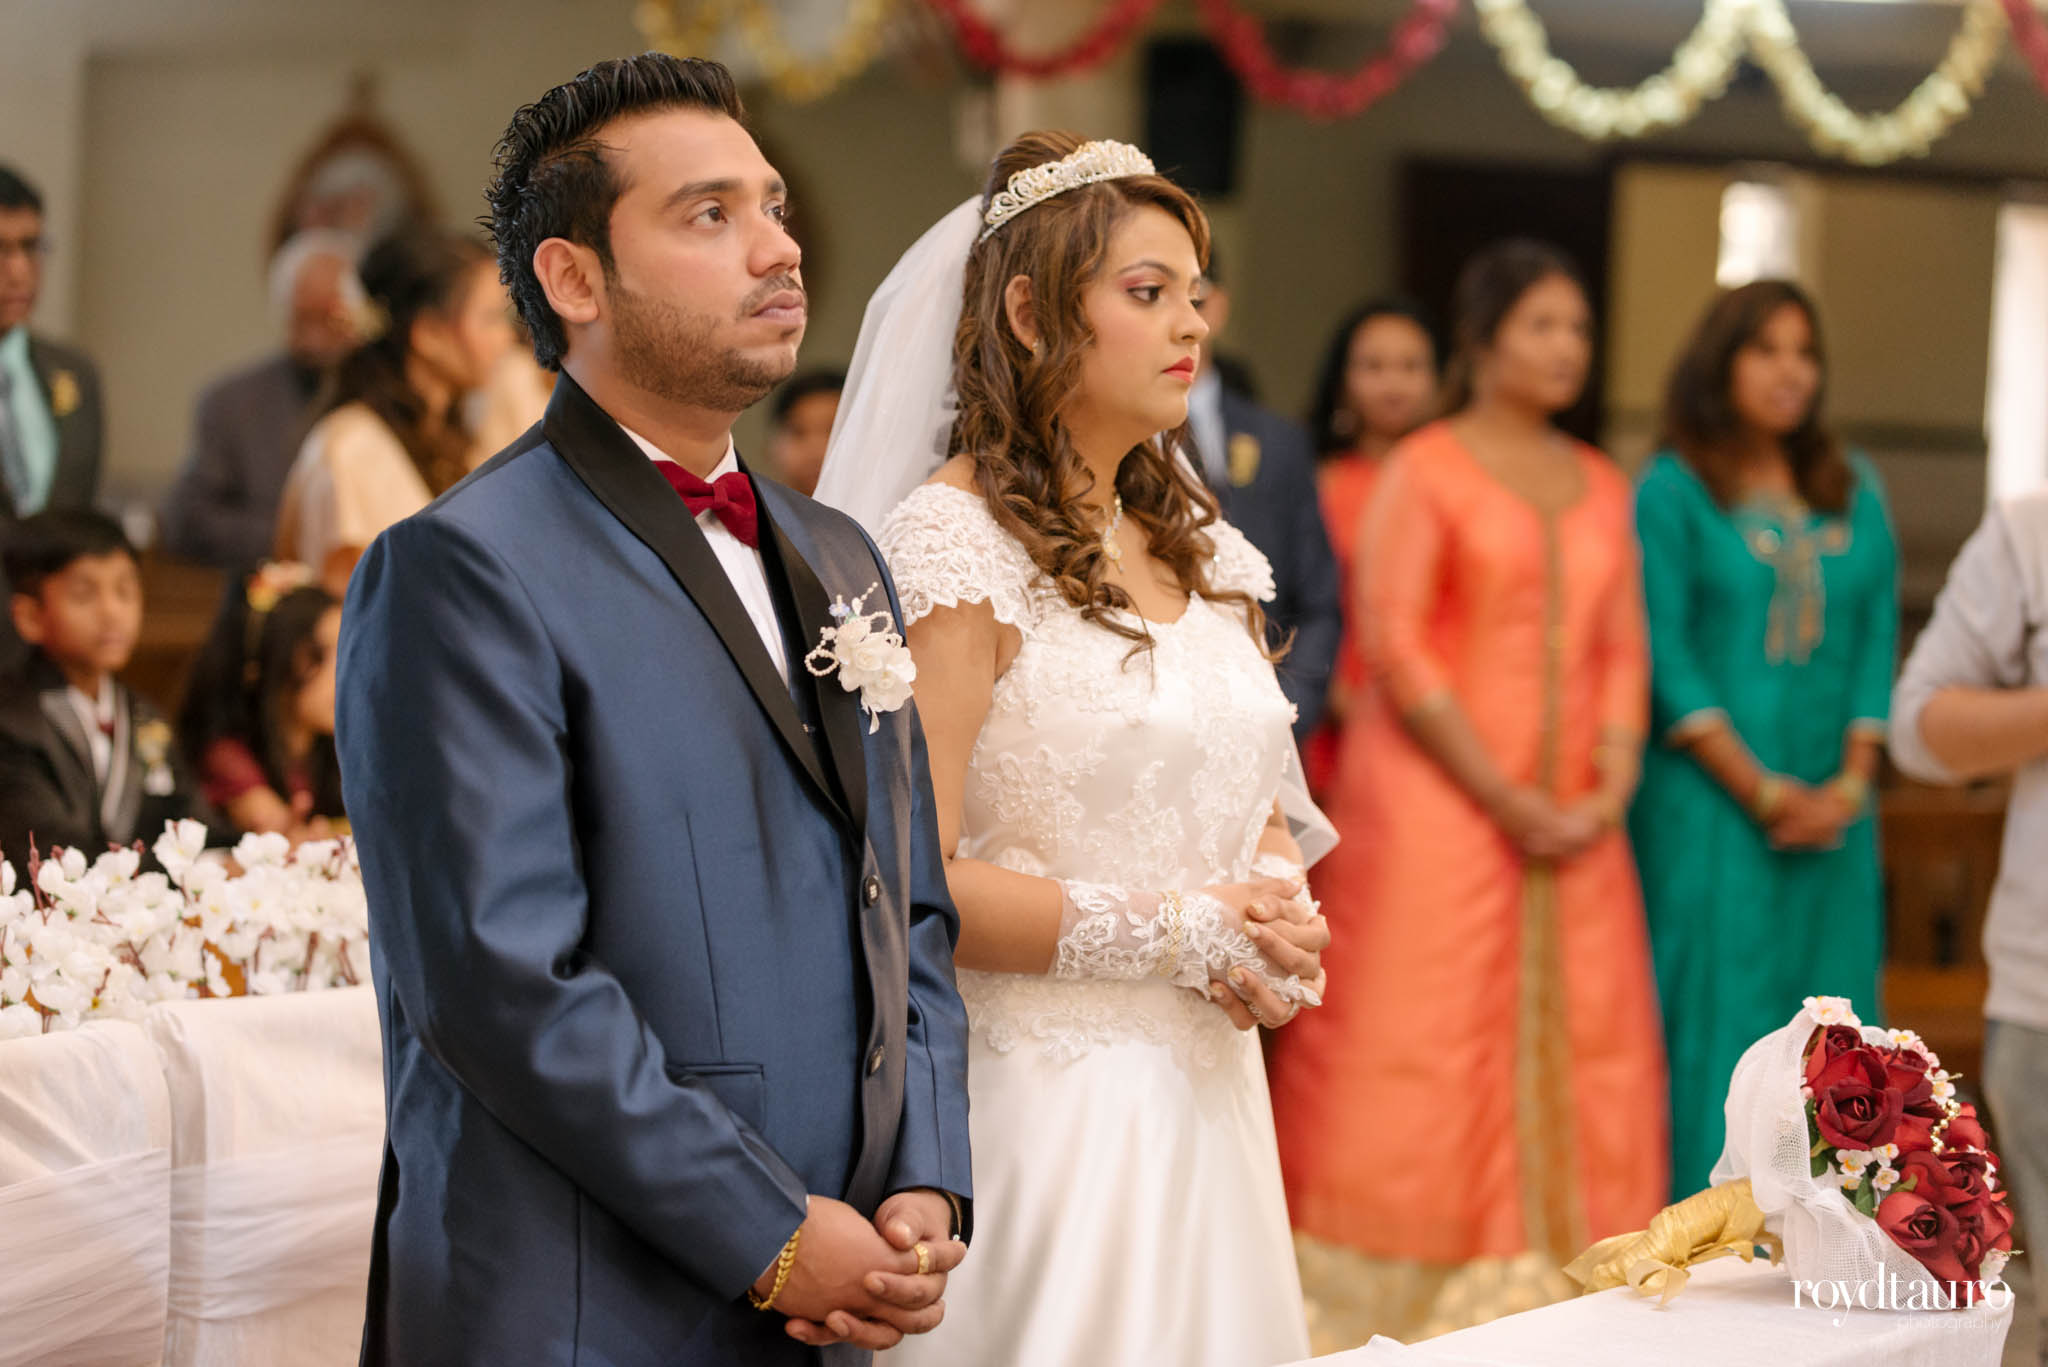 Harman-Glynnis-Wedding-56.jpg